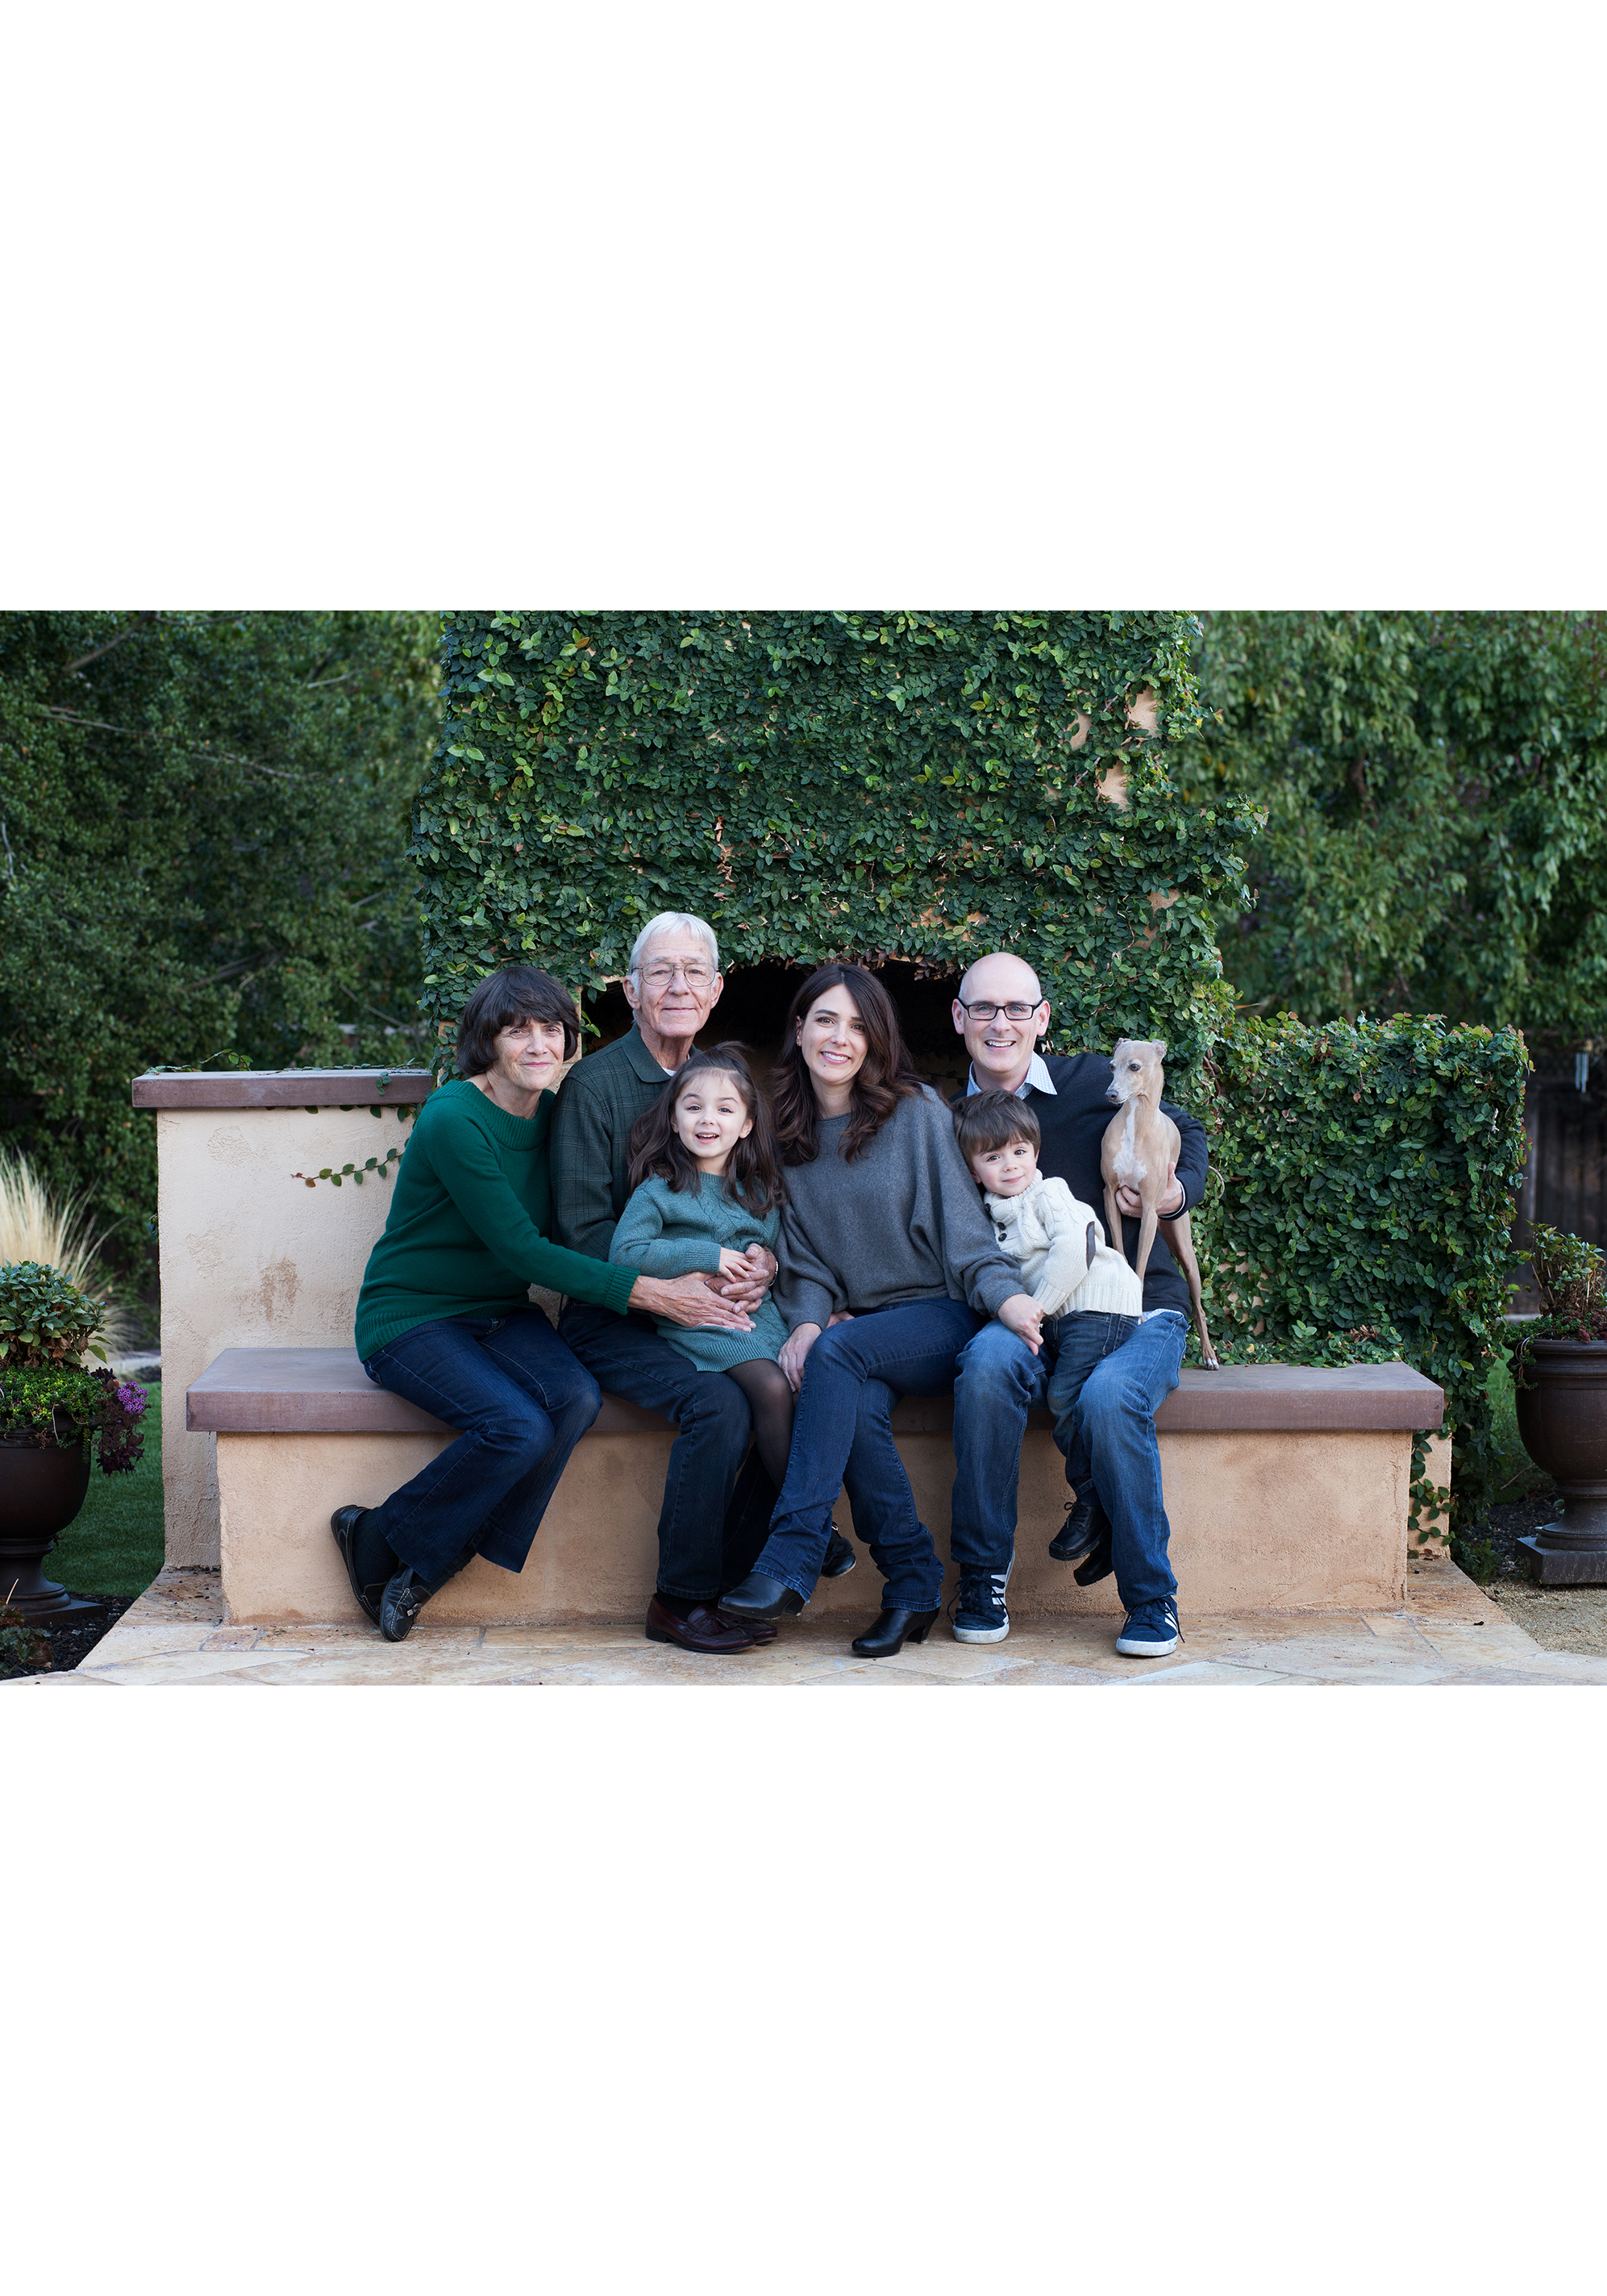 Copy of Copy of generational portrait of daughter with parents and grandkids in